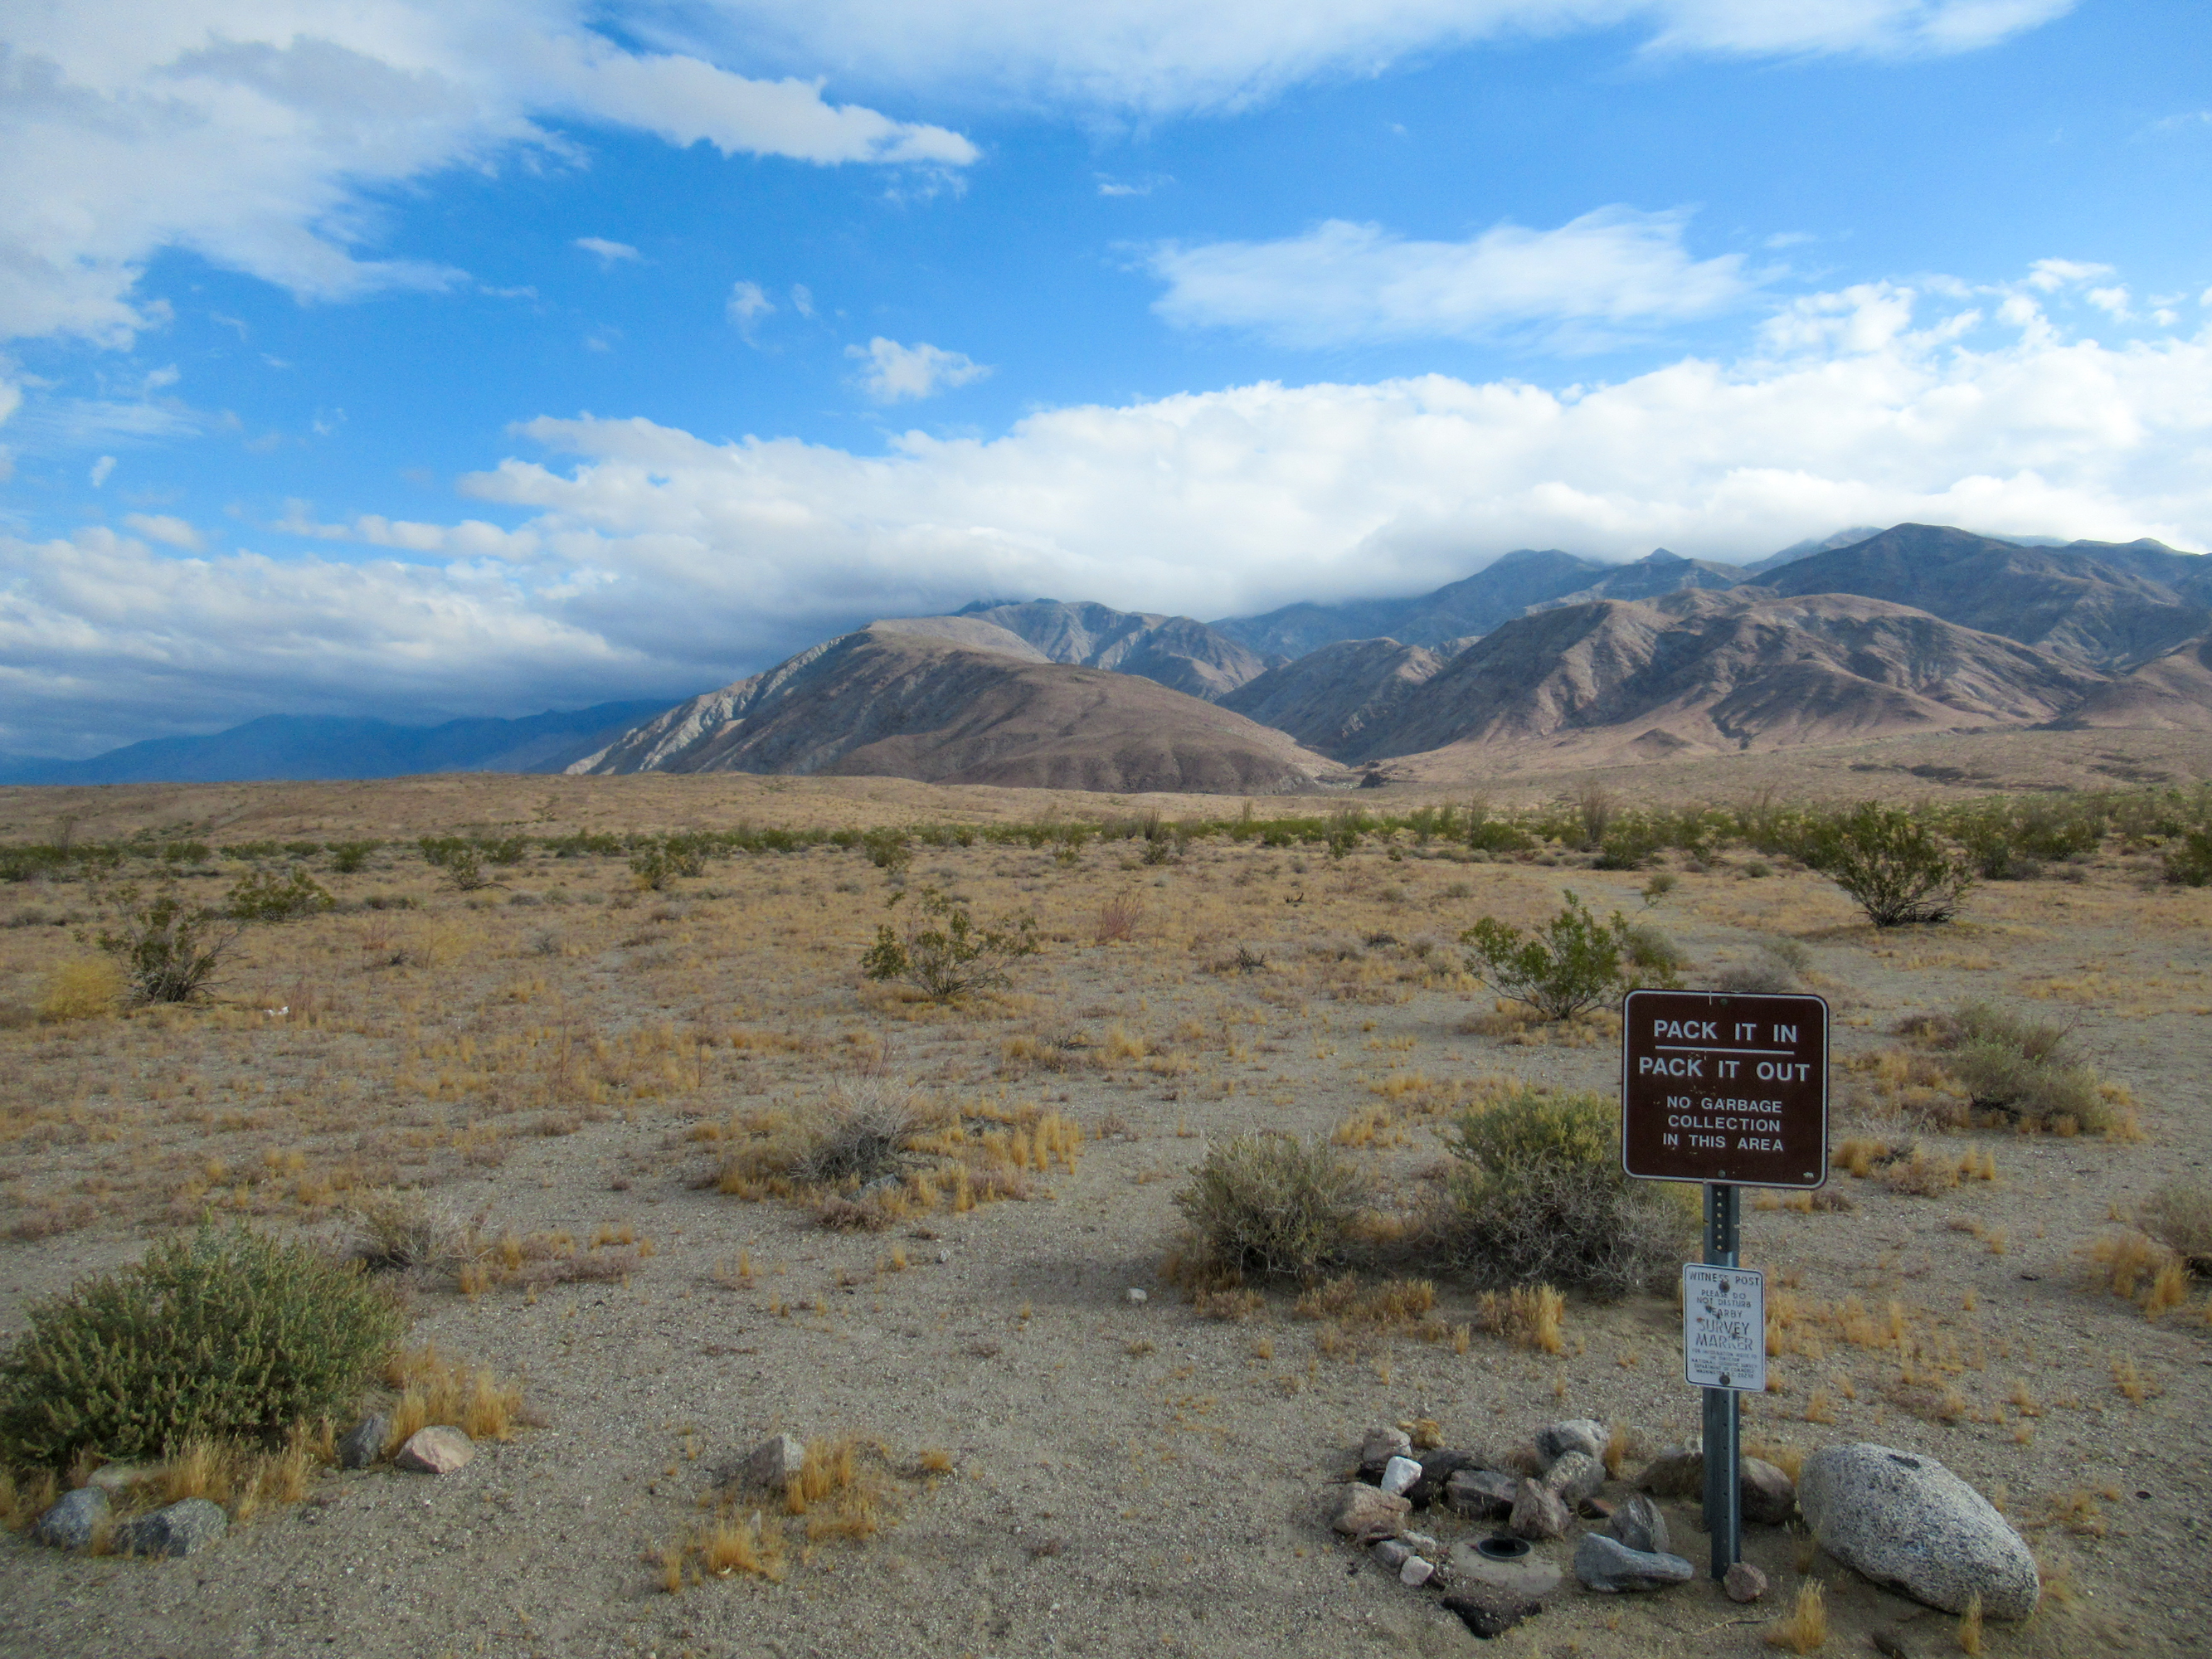 Trailhead for Rabbit Peak in the Anza Borrego desert.